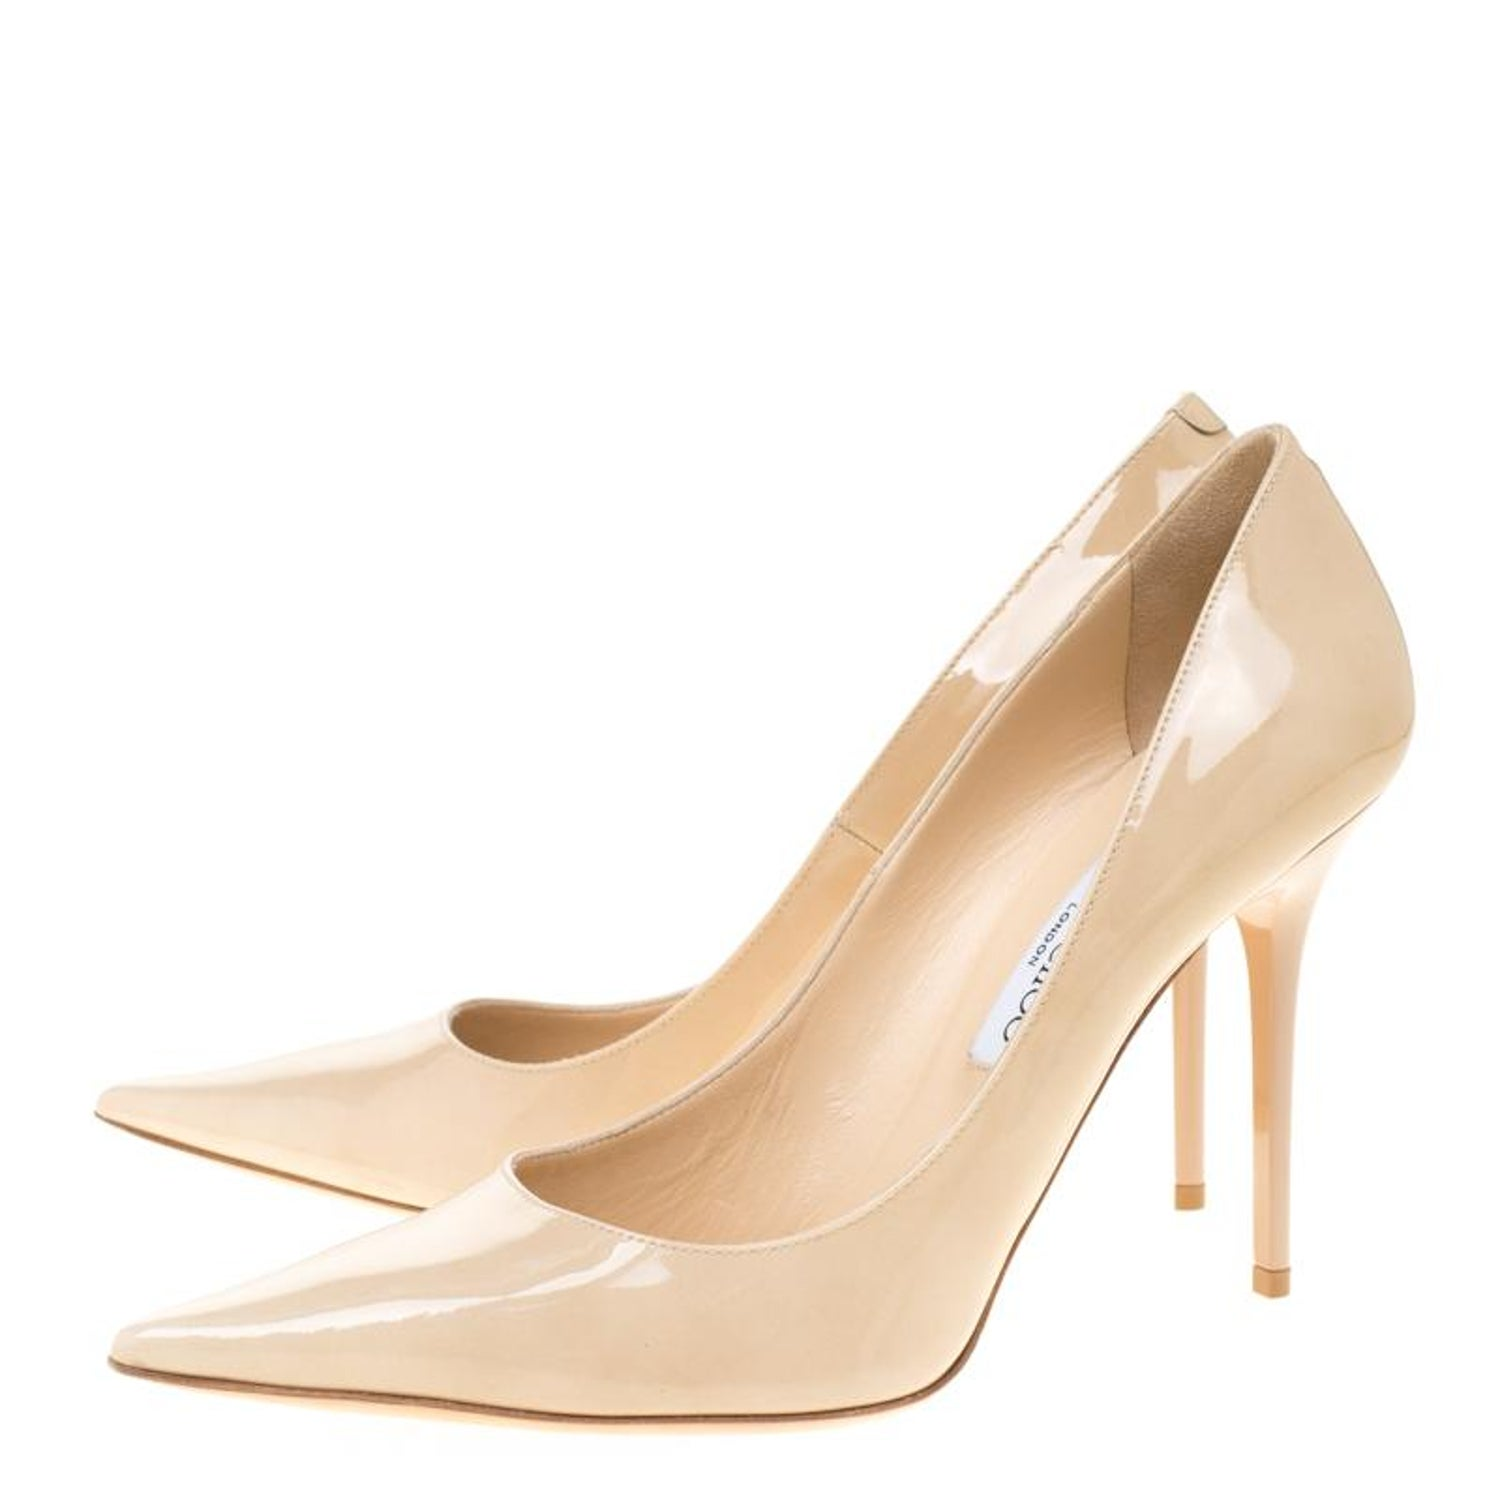 a6412b2ed38 Jimmy Choo Beige Patent Leather Abel Pointed Toe Pumps Size 40.5 For Sale  at 1stdibs